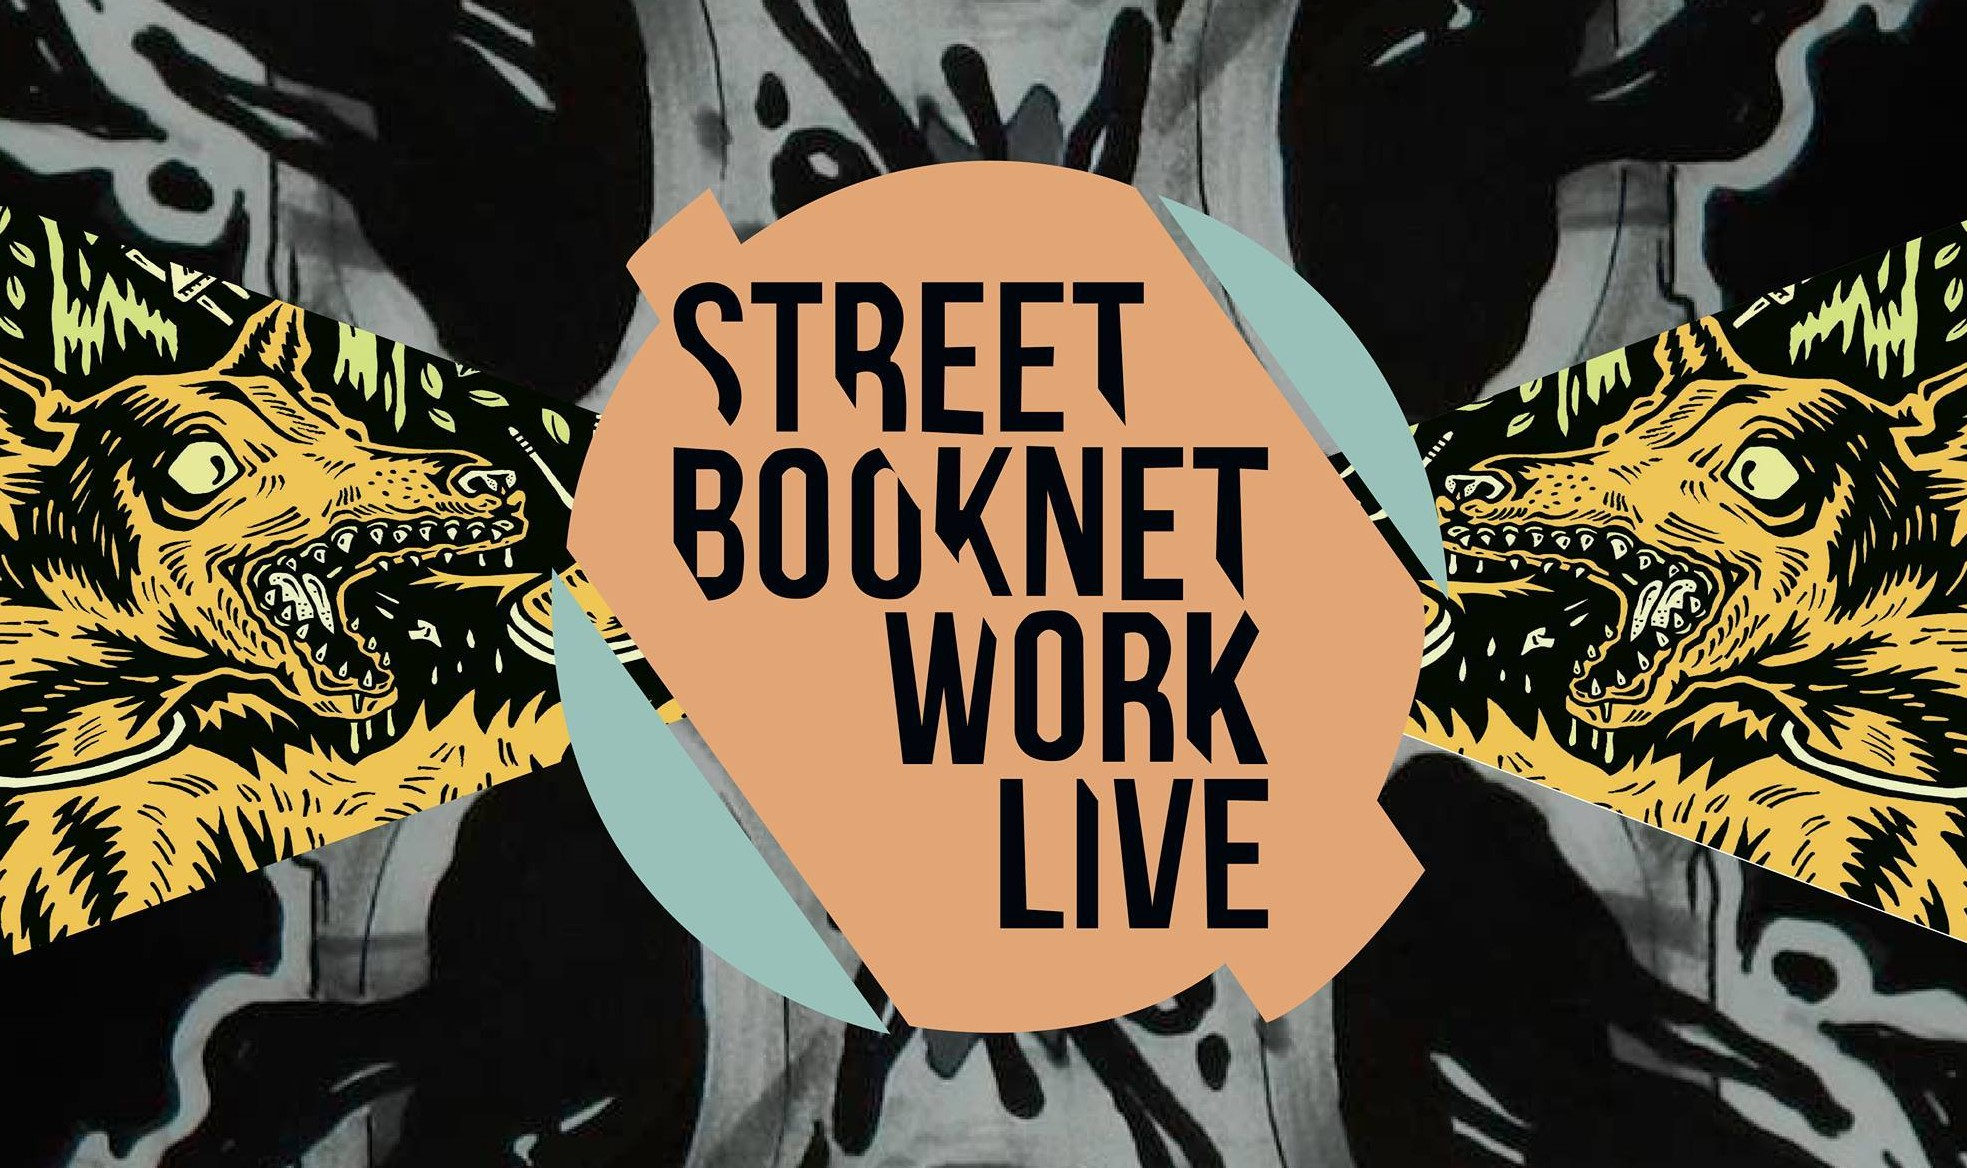 StreetBook Network Live Multiverso Firenze 17 dicembre 2016